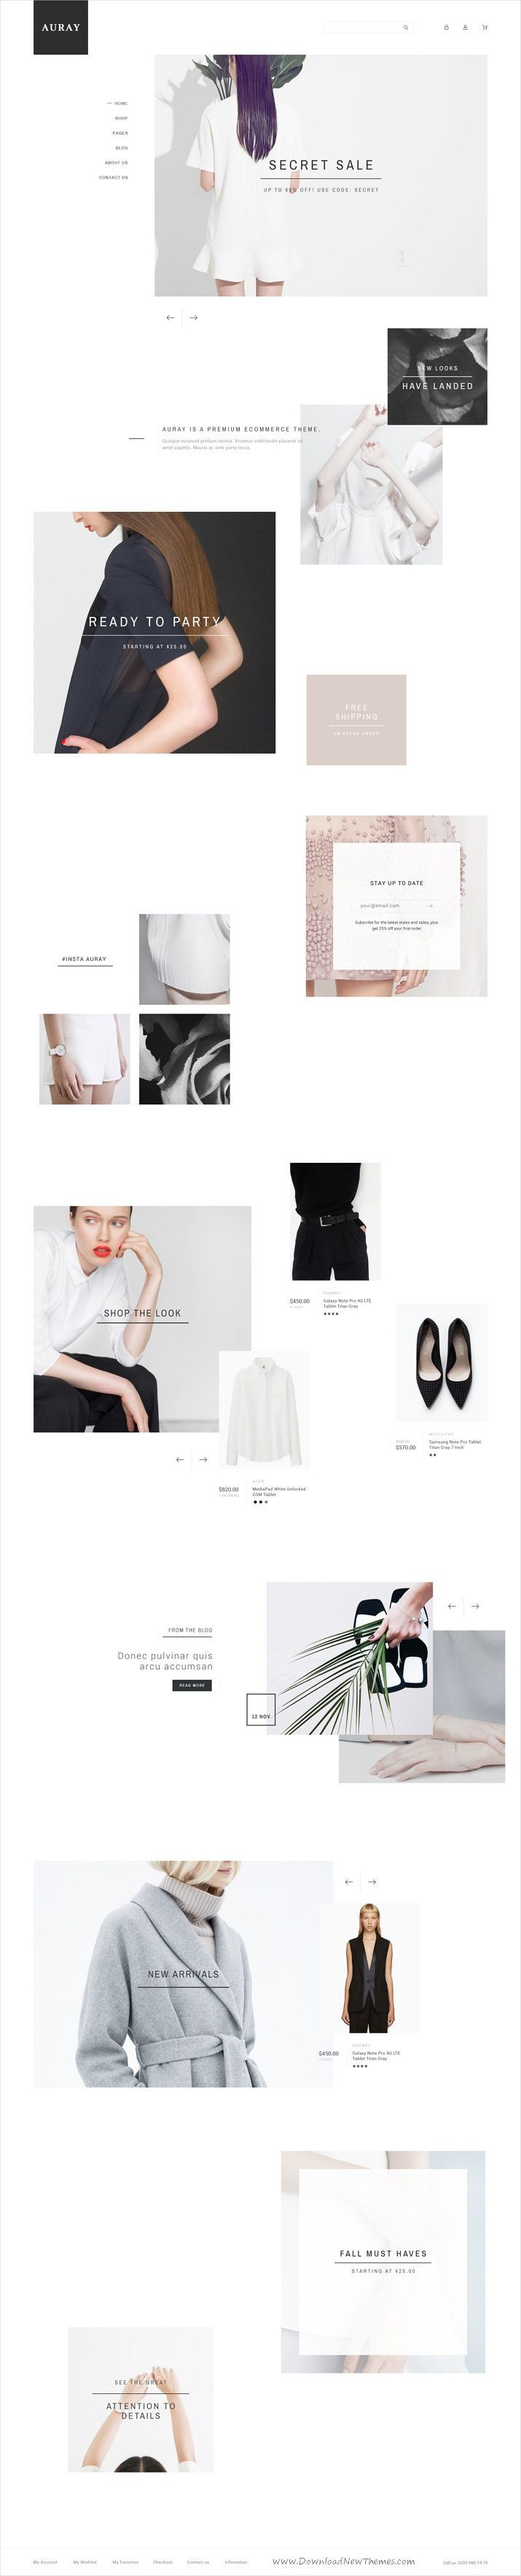 Auray is clean and modern design creative PSD template for #onlineshop stunning #eCommerce website with 10 #niche homepage layouts and 45 layered PSD files download now > https://themeforest.net/item/auray-ecommerce-psd-template/19751094?ref=Datasata